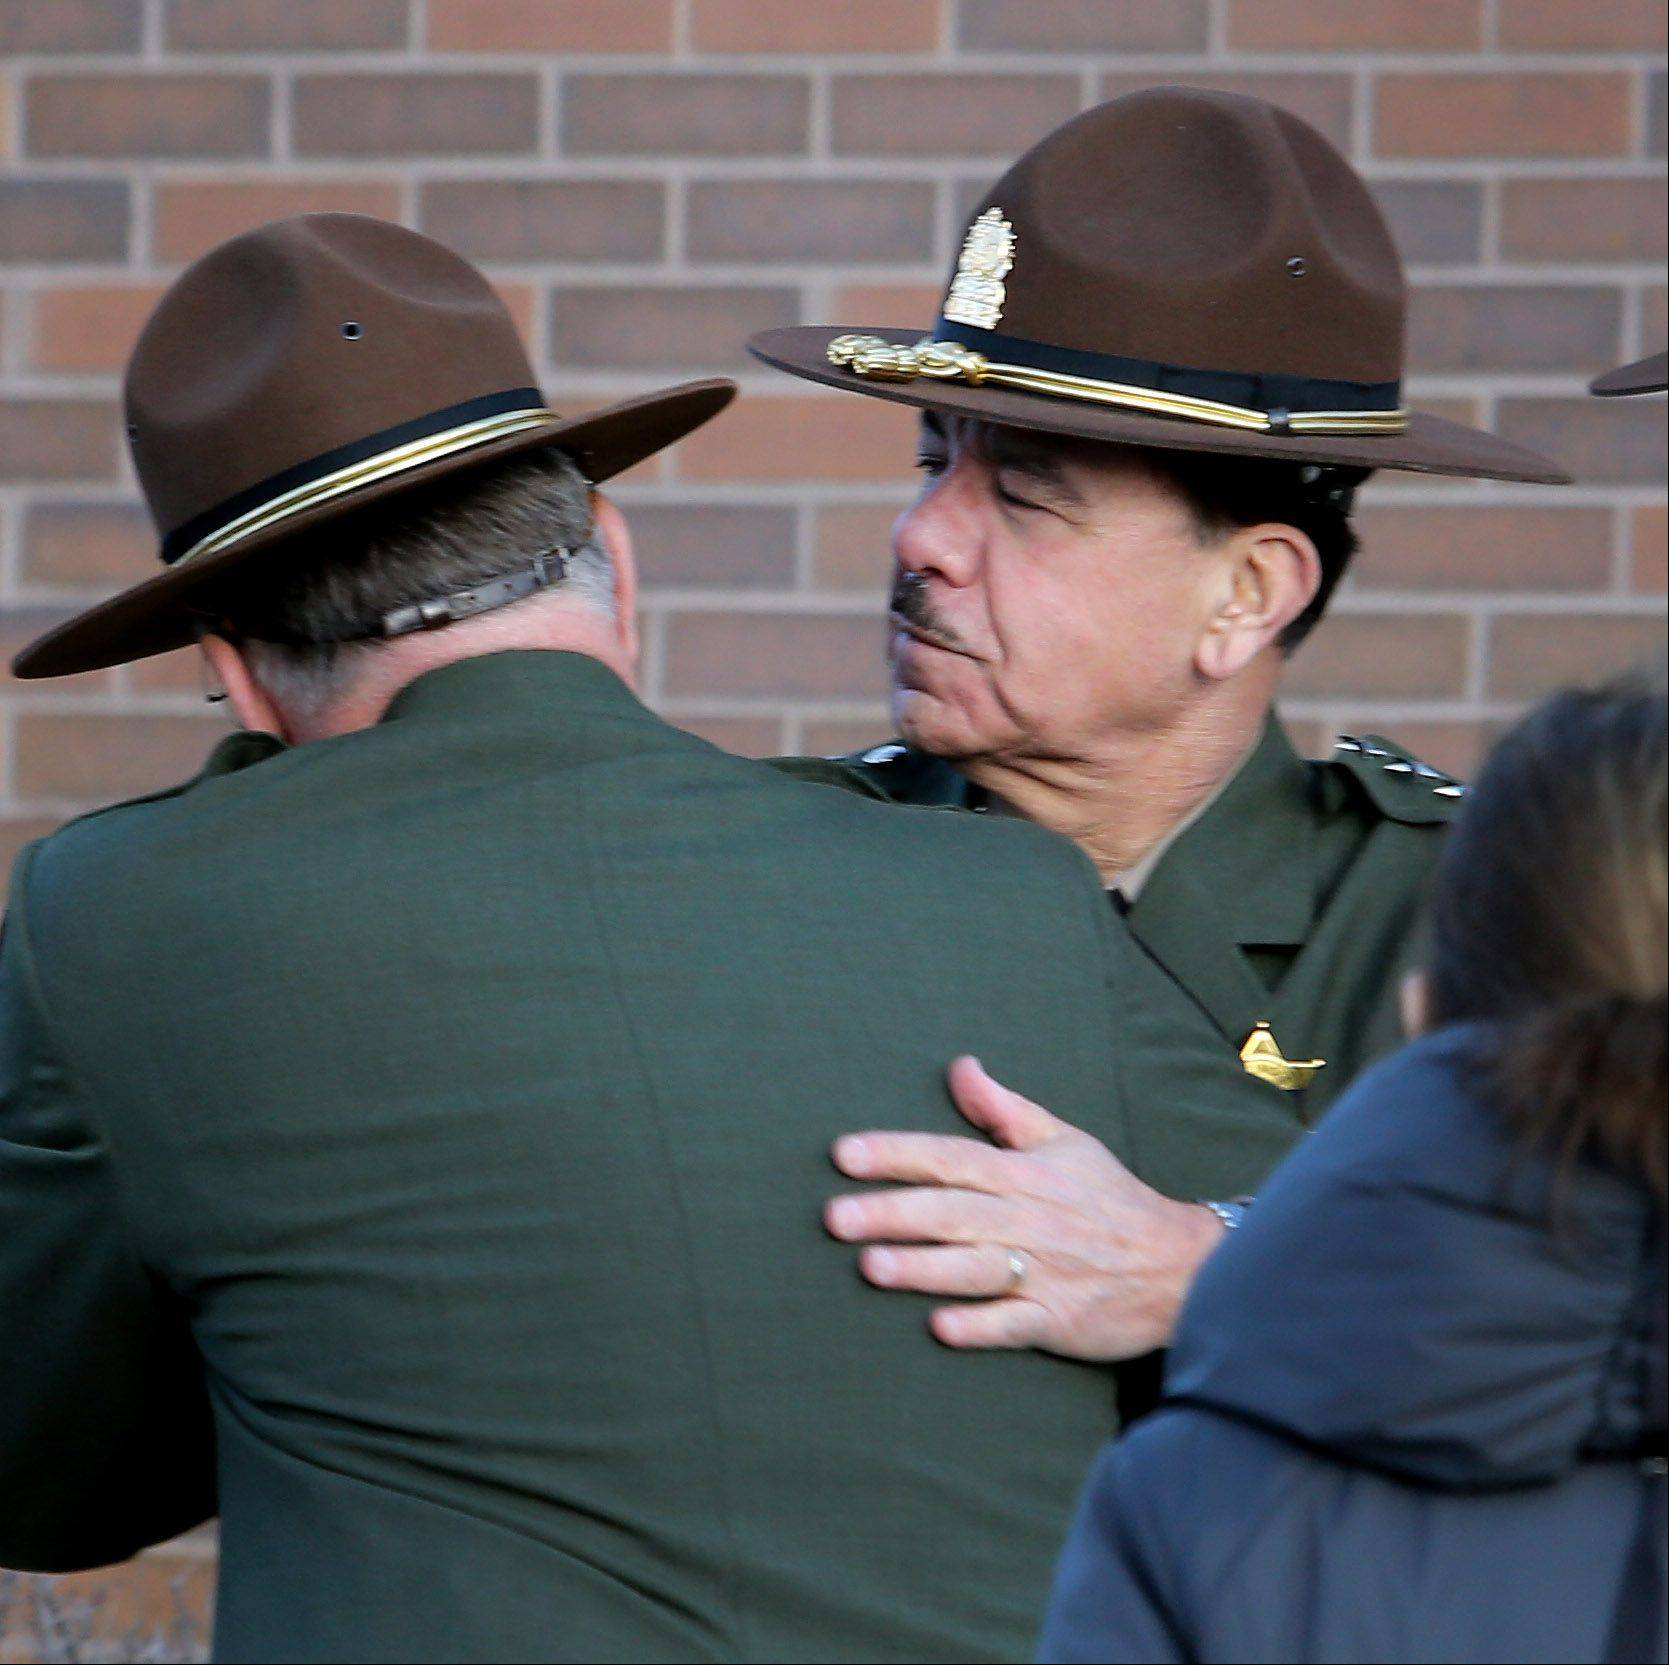 Hiram Grau, director of the Illinois State Police gives a hug to a trooper as mourners gather for the visitation of James Sauter at Moraine Valley Church in Palos Heights on Monday. He was an Illinois state trooper from Vernon Hills, who was killed early Friday morning on the job.